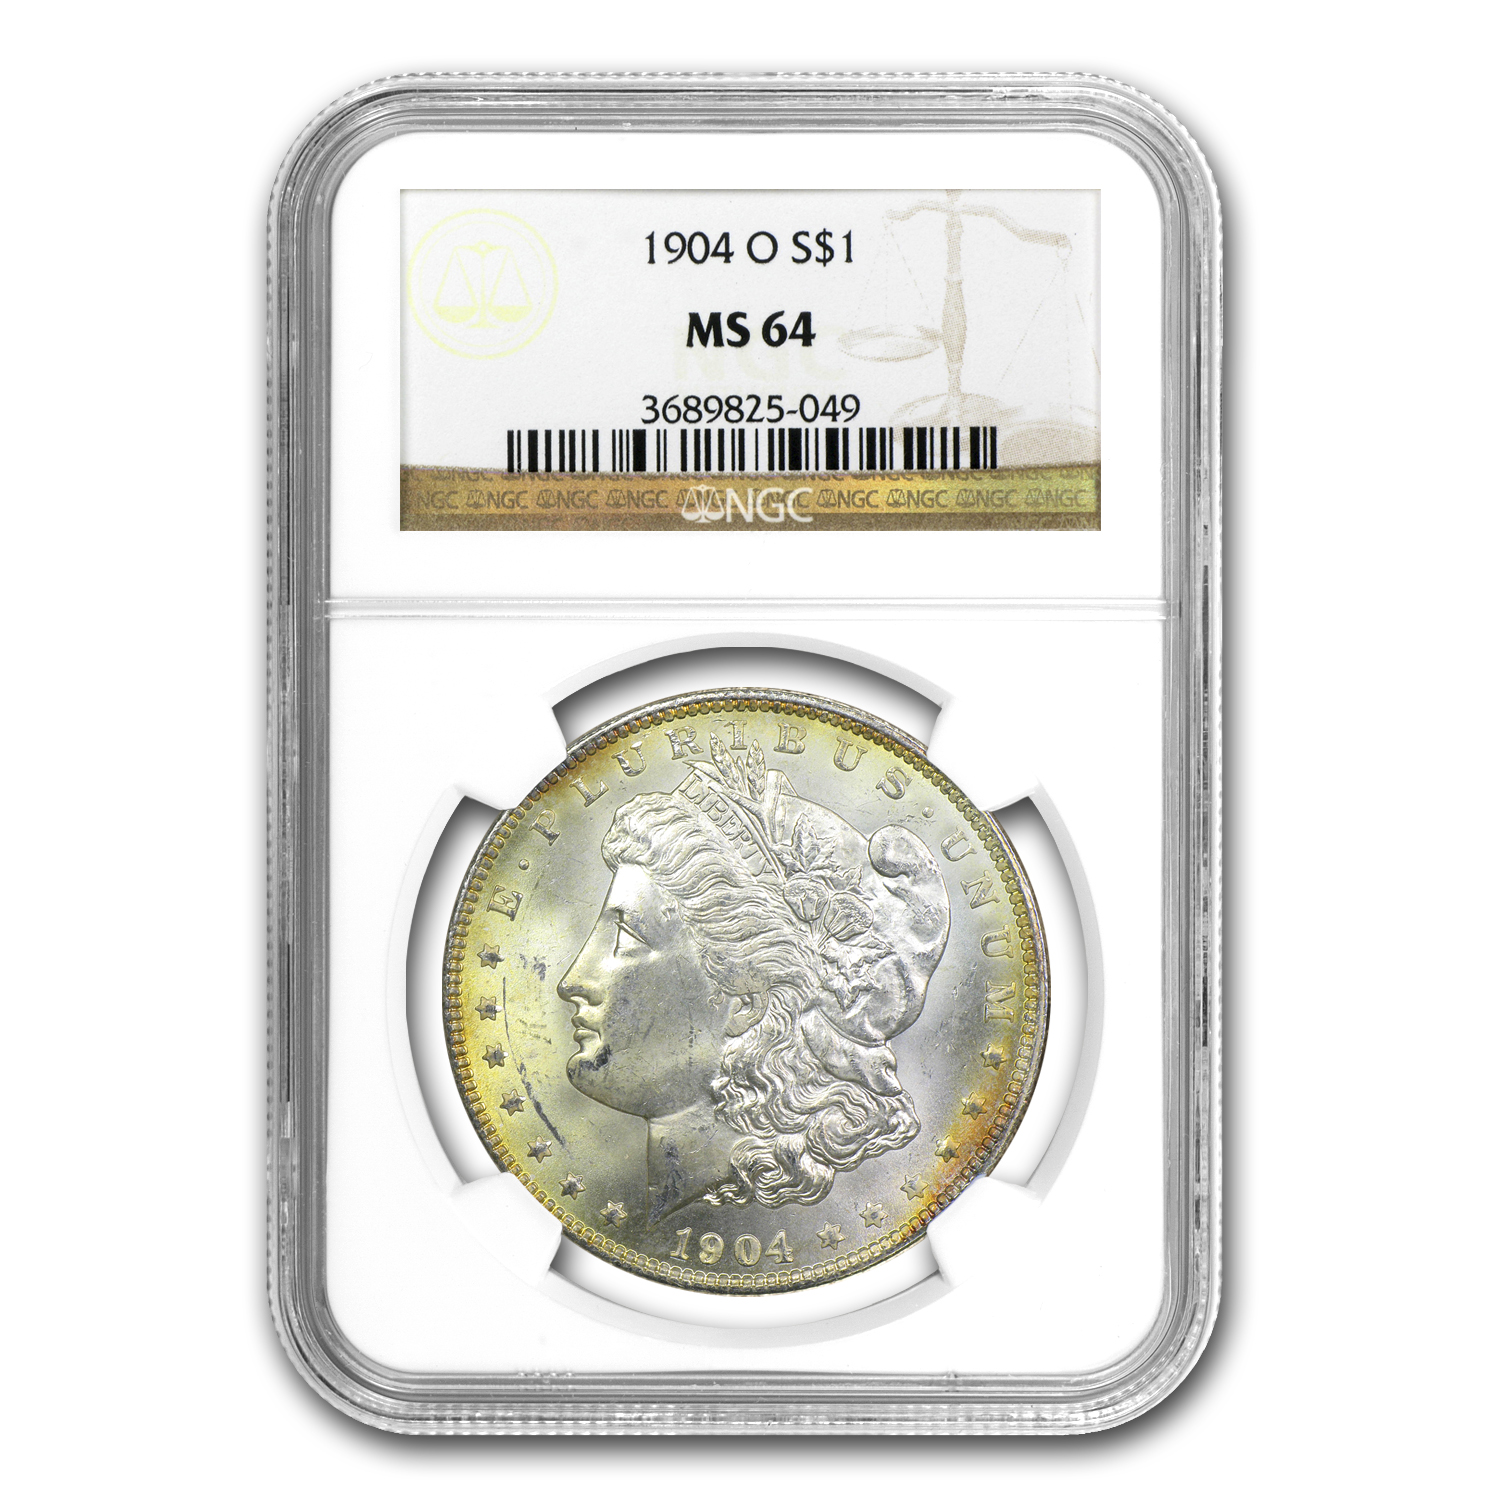 1878-1904 Morgan Dollars - MS-64 NGC - Beautifully Toned